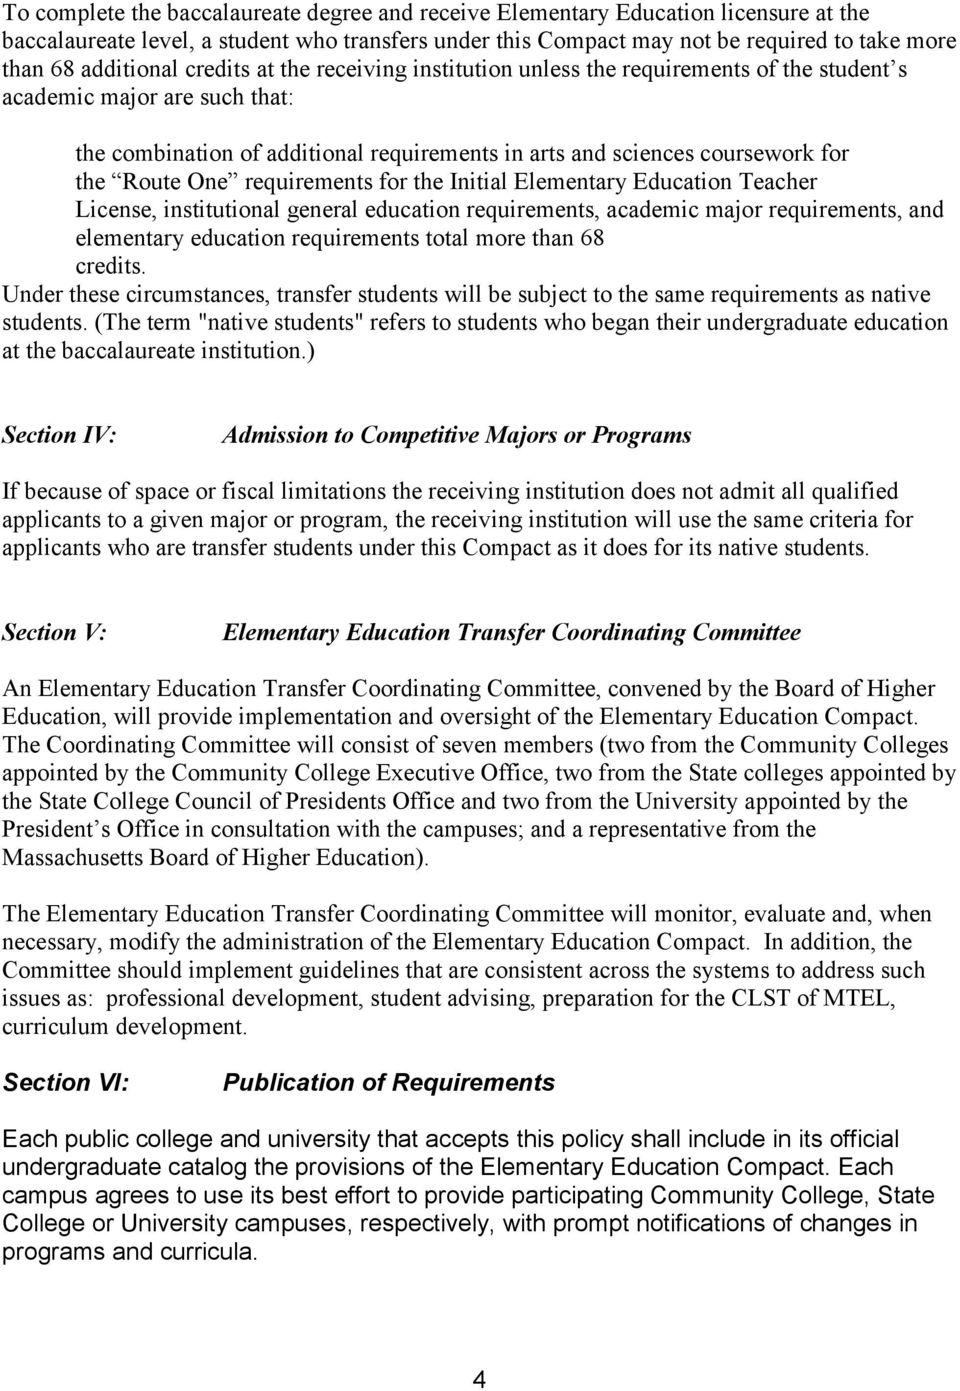 the Route One requirements for the Initial Elementary Education Teacher License, institutional general education requirements, academic major requirements, and elementary education requirements total